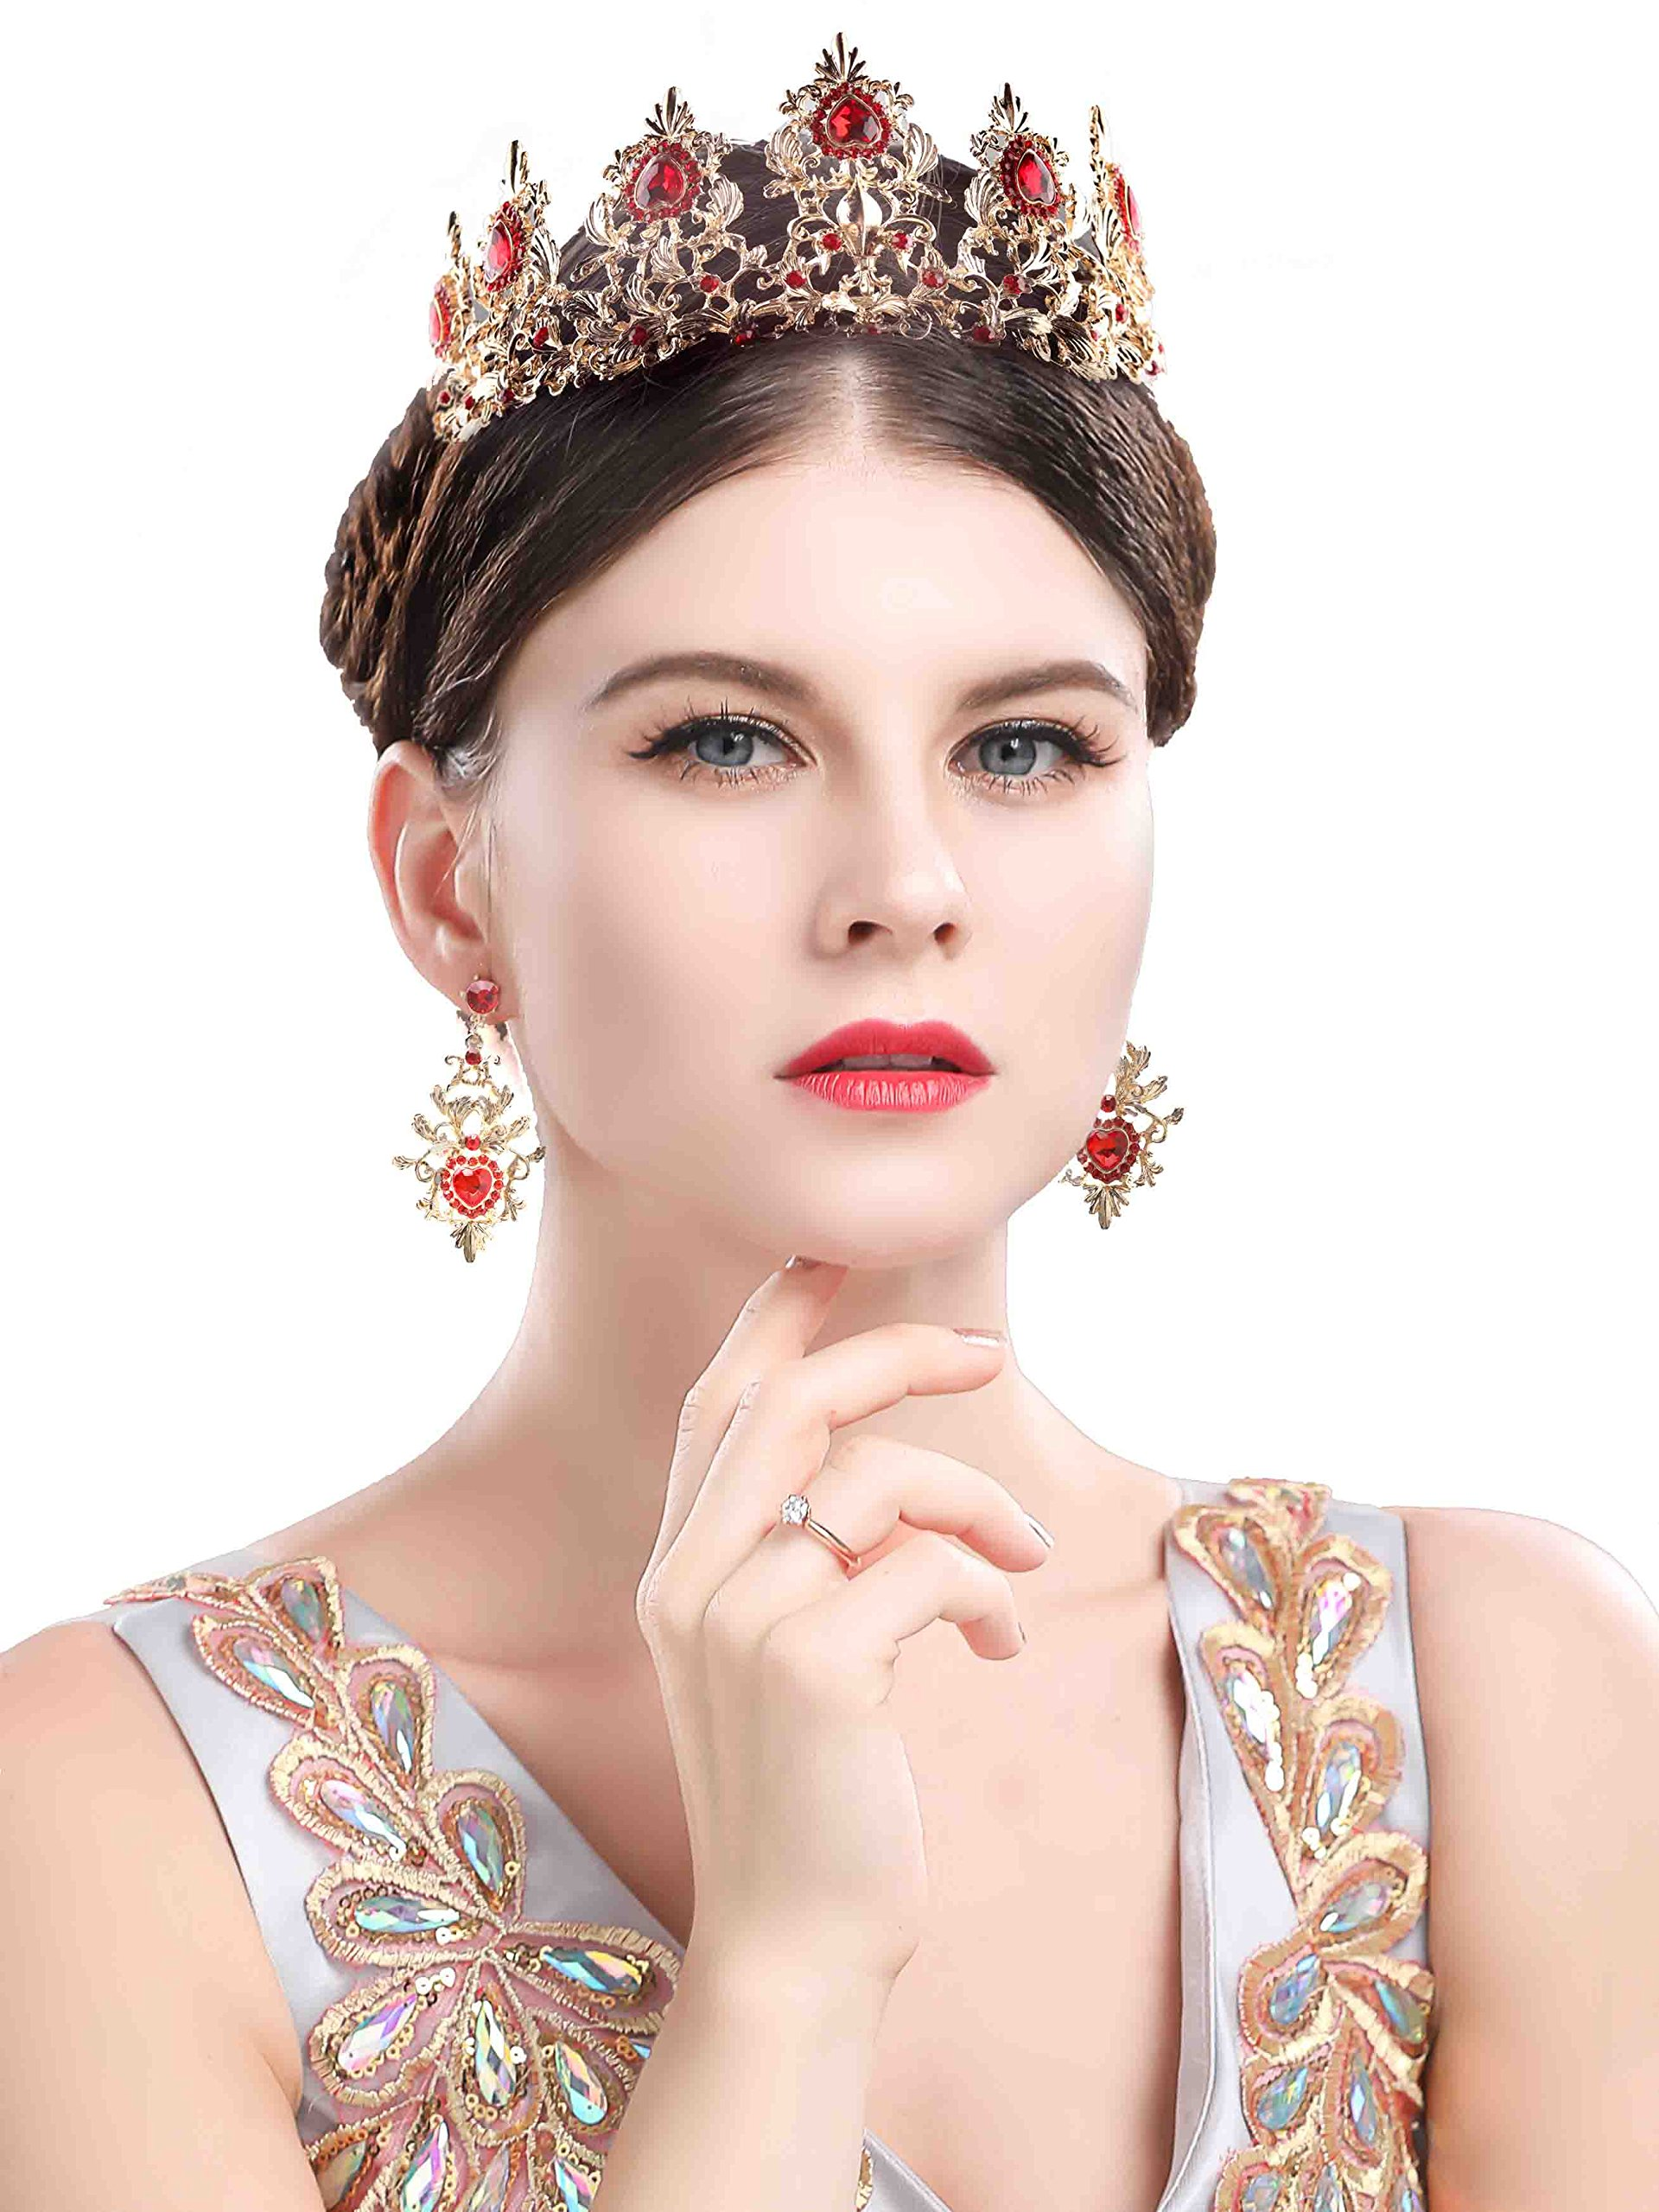 Chicer Women Baroque vintage Wedding Crown Tiara boutique headdress Earrings (Red).